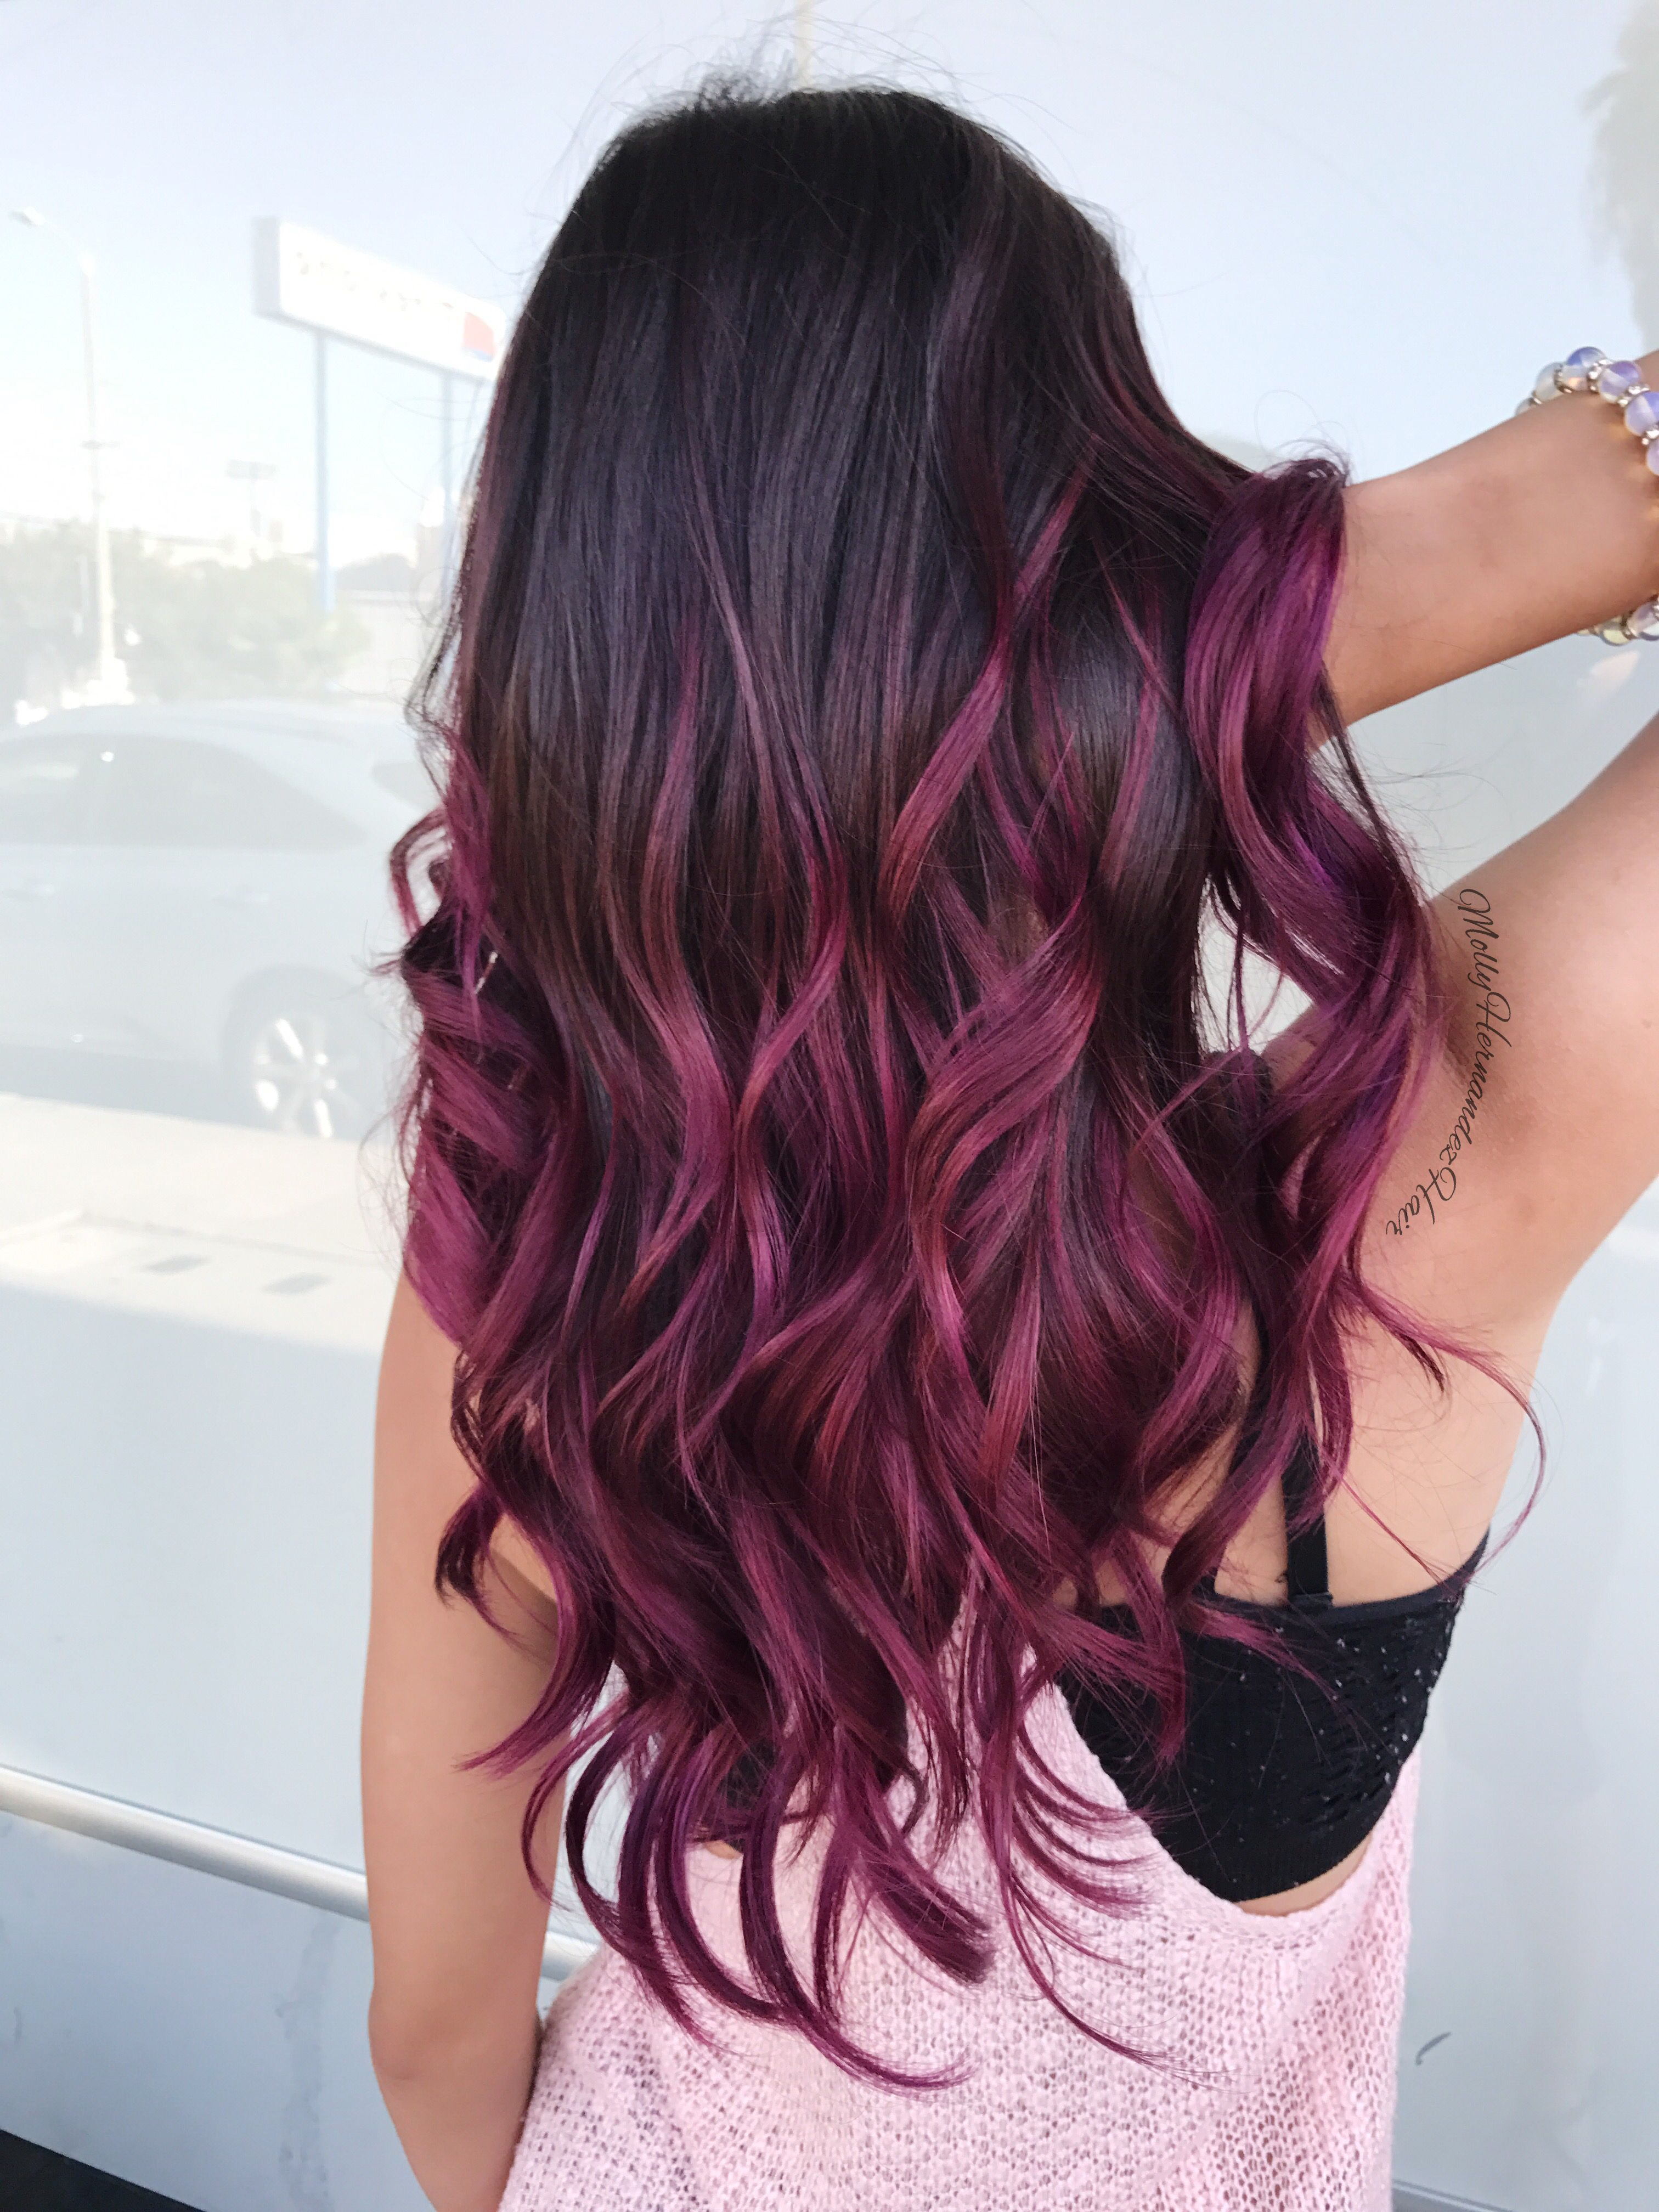 Burgundy ombré purple & magenta balayage hair goals